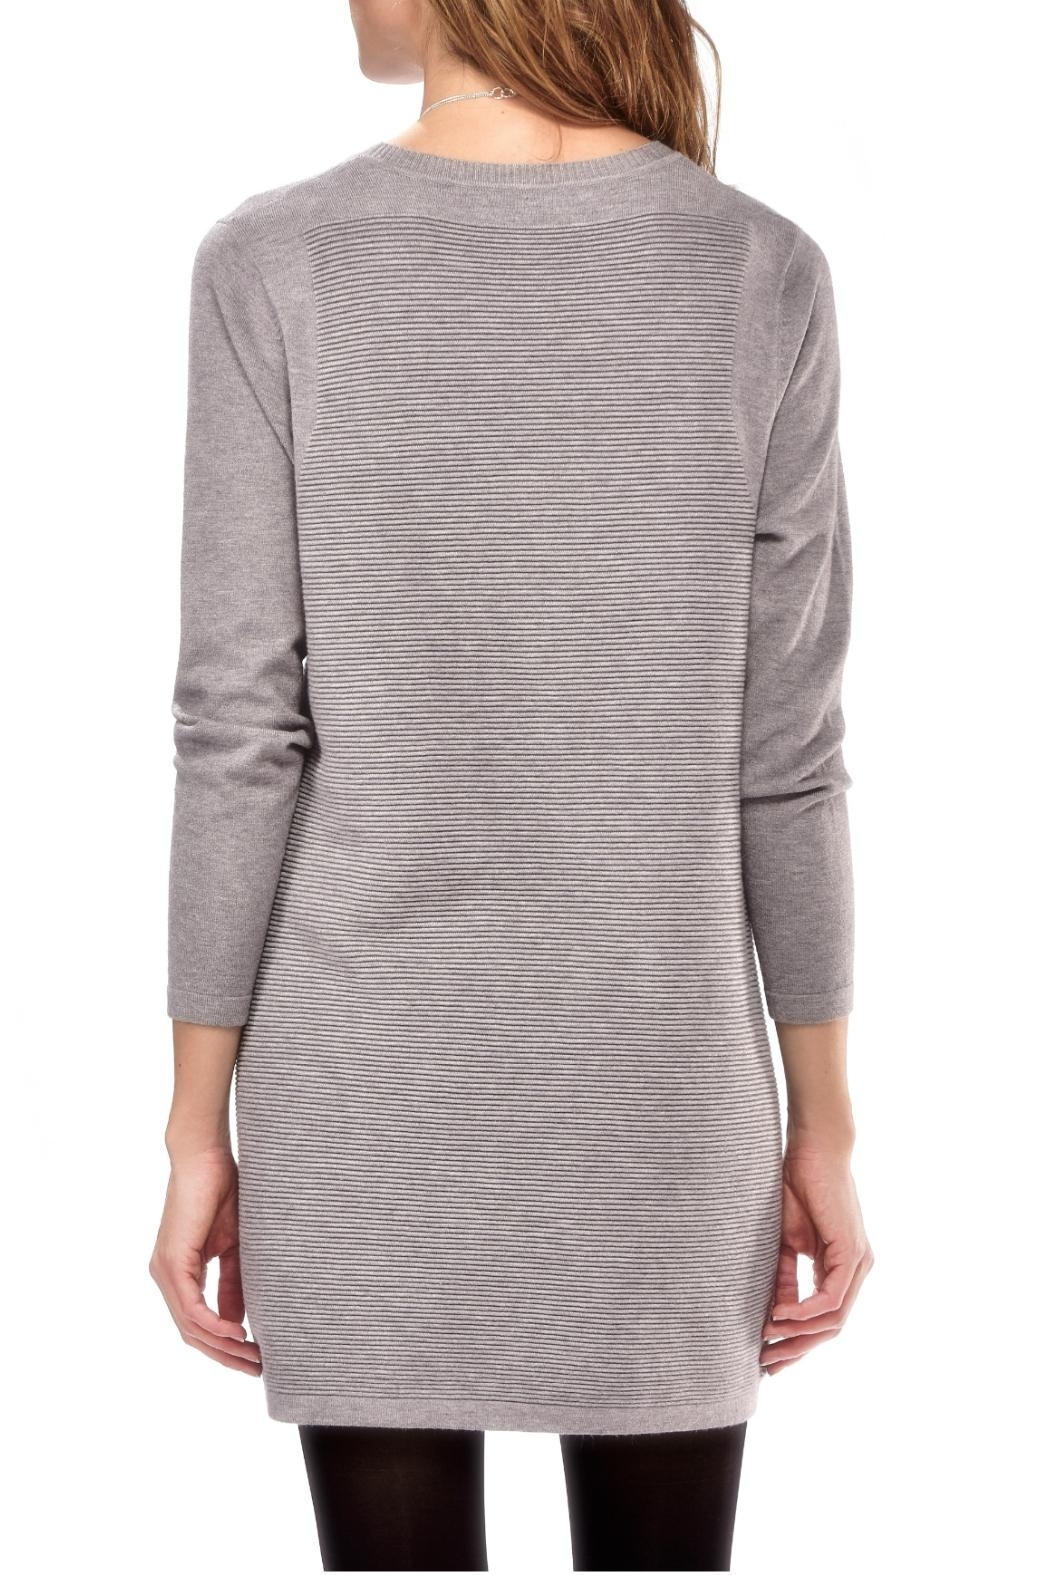 Charlie Paige Ribbed Knit Dress - Front Full Image